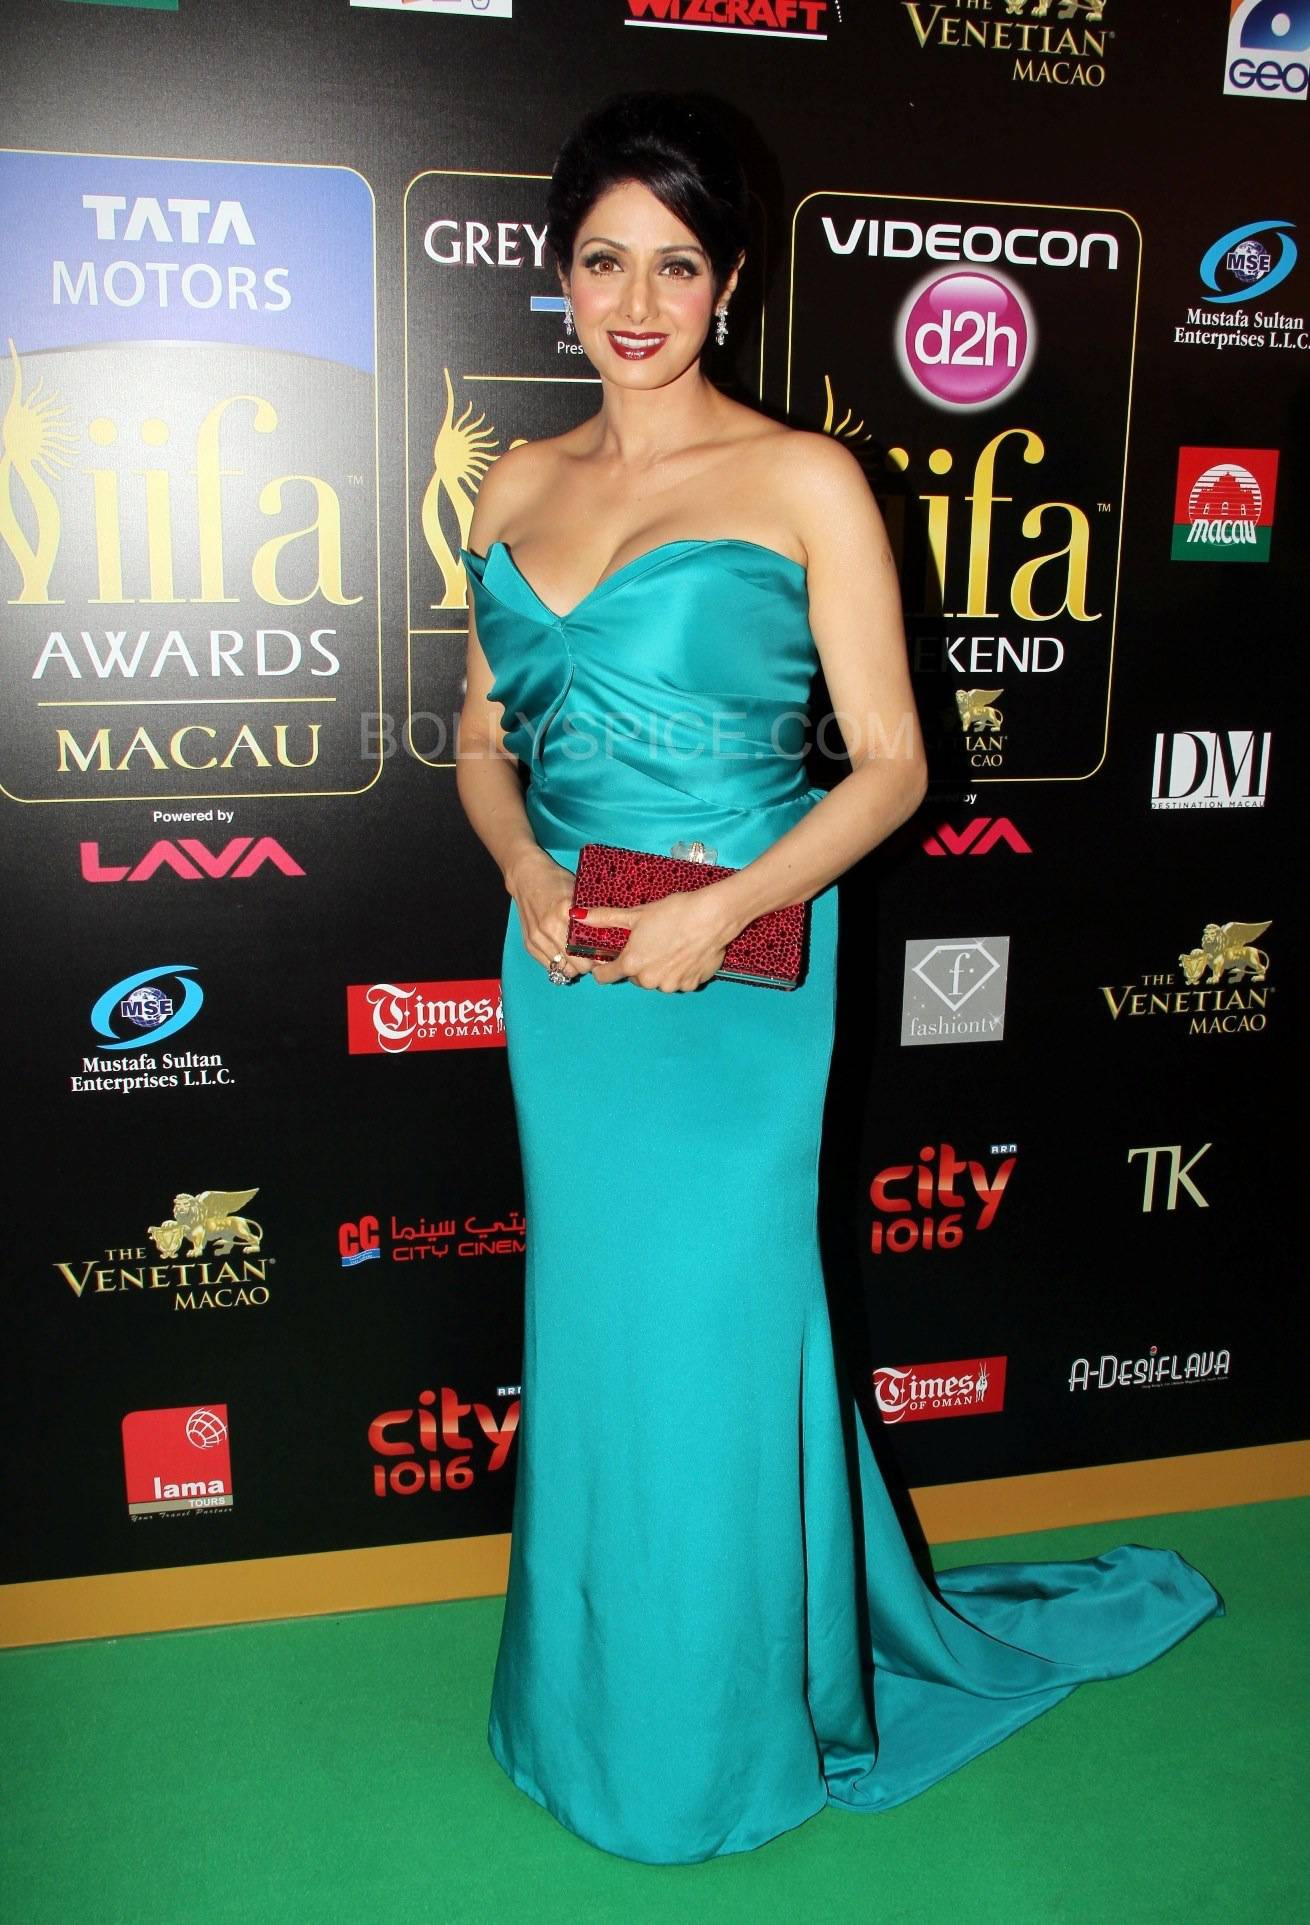 Sridevi at IIFA Rocks Green carpet More from IIFA Rocks including winners and more Green Carpet pics! Pics added!